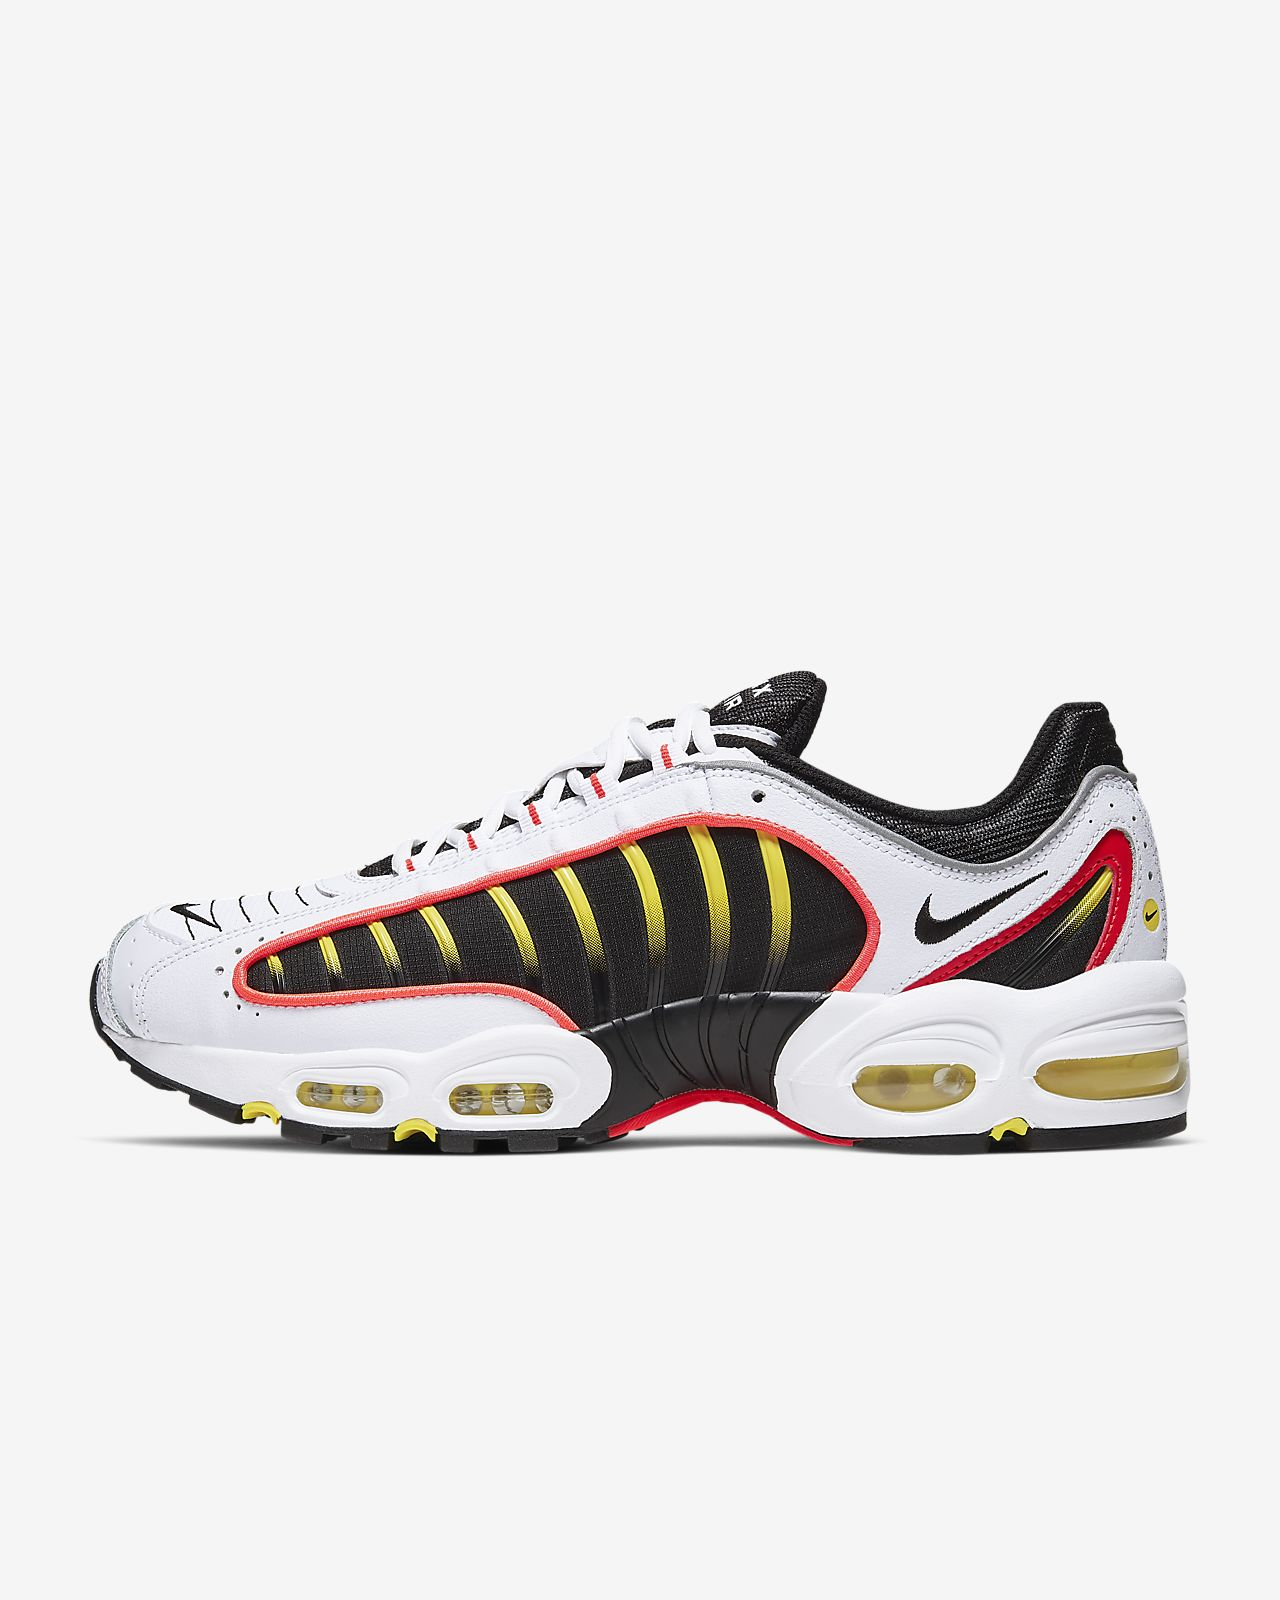 Nike Air Max Tailwind IV Men's Shoe